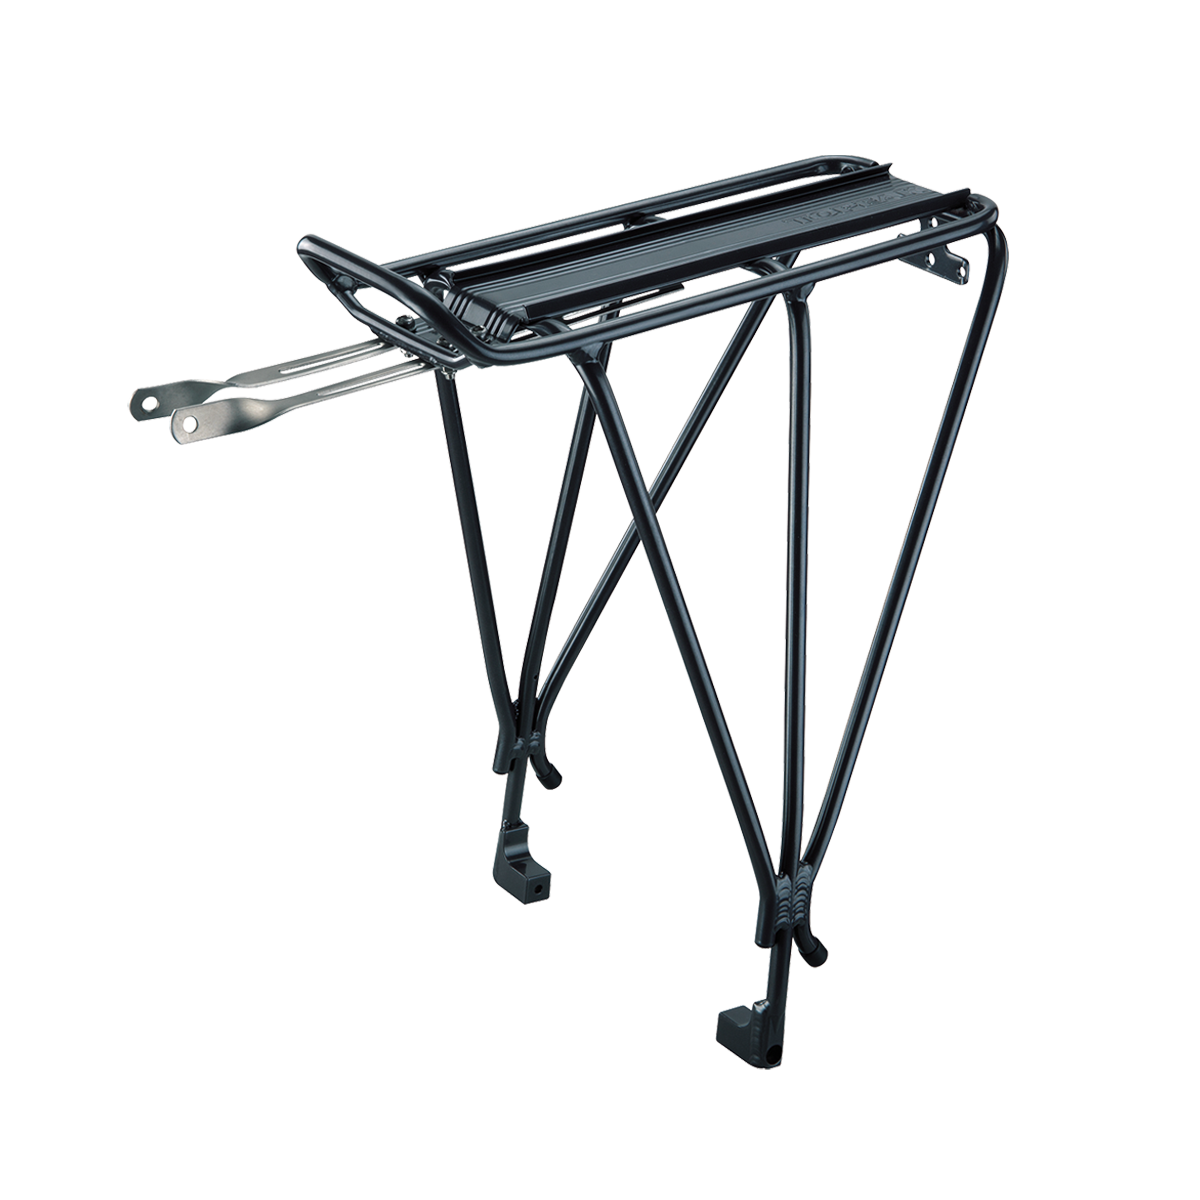 Explorer MTX 29 Disc Rear Rack Black